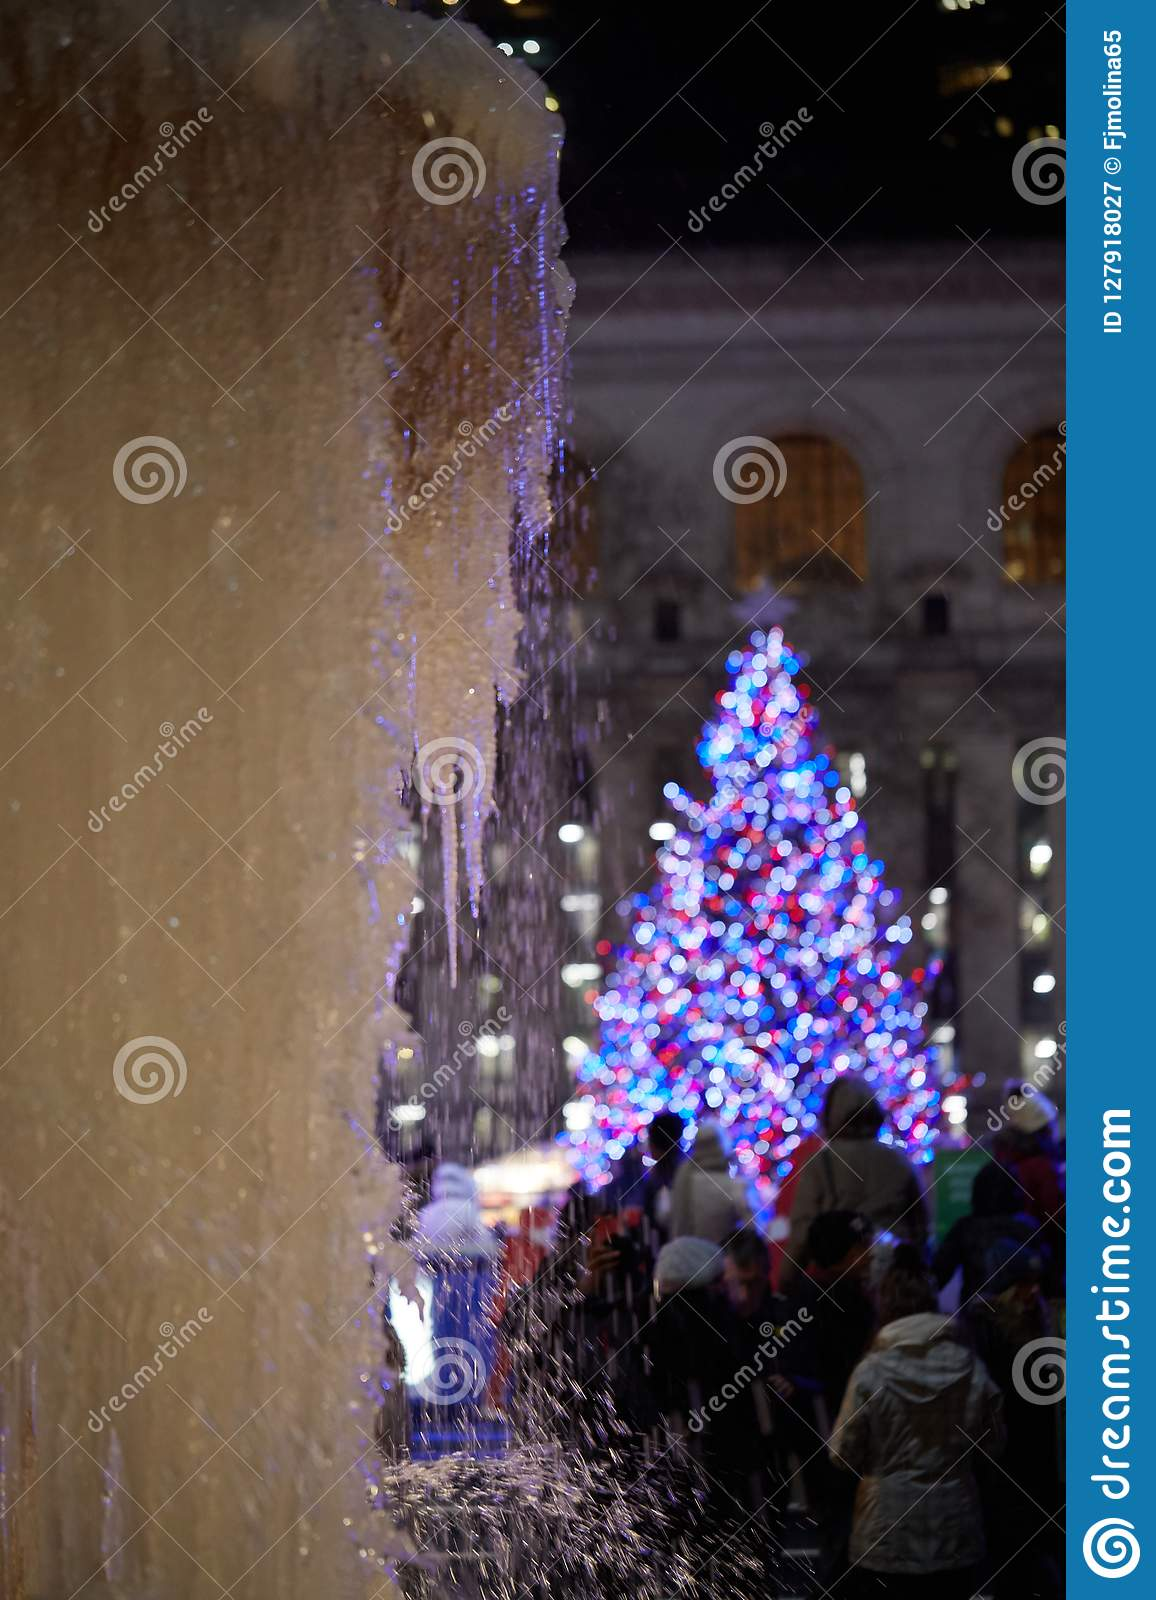 Bryant Park Christmas.Frozen Fountain In Bryant Park New York Stock Image Image